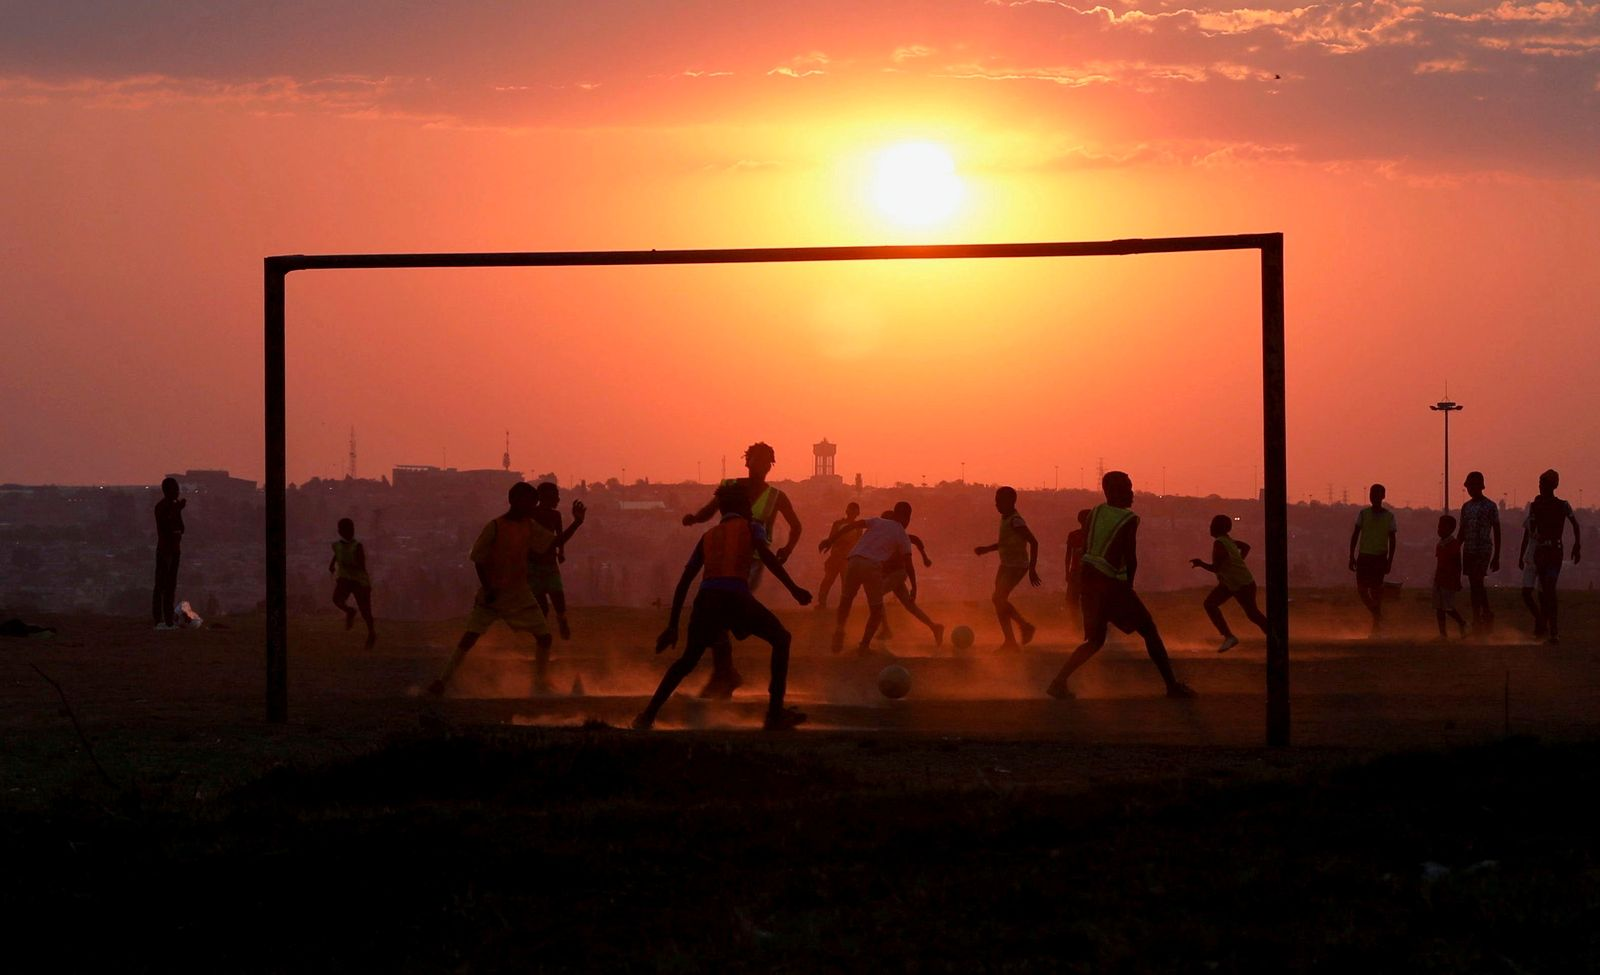 Locals play soccer on a dusty pitch in Soweto